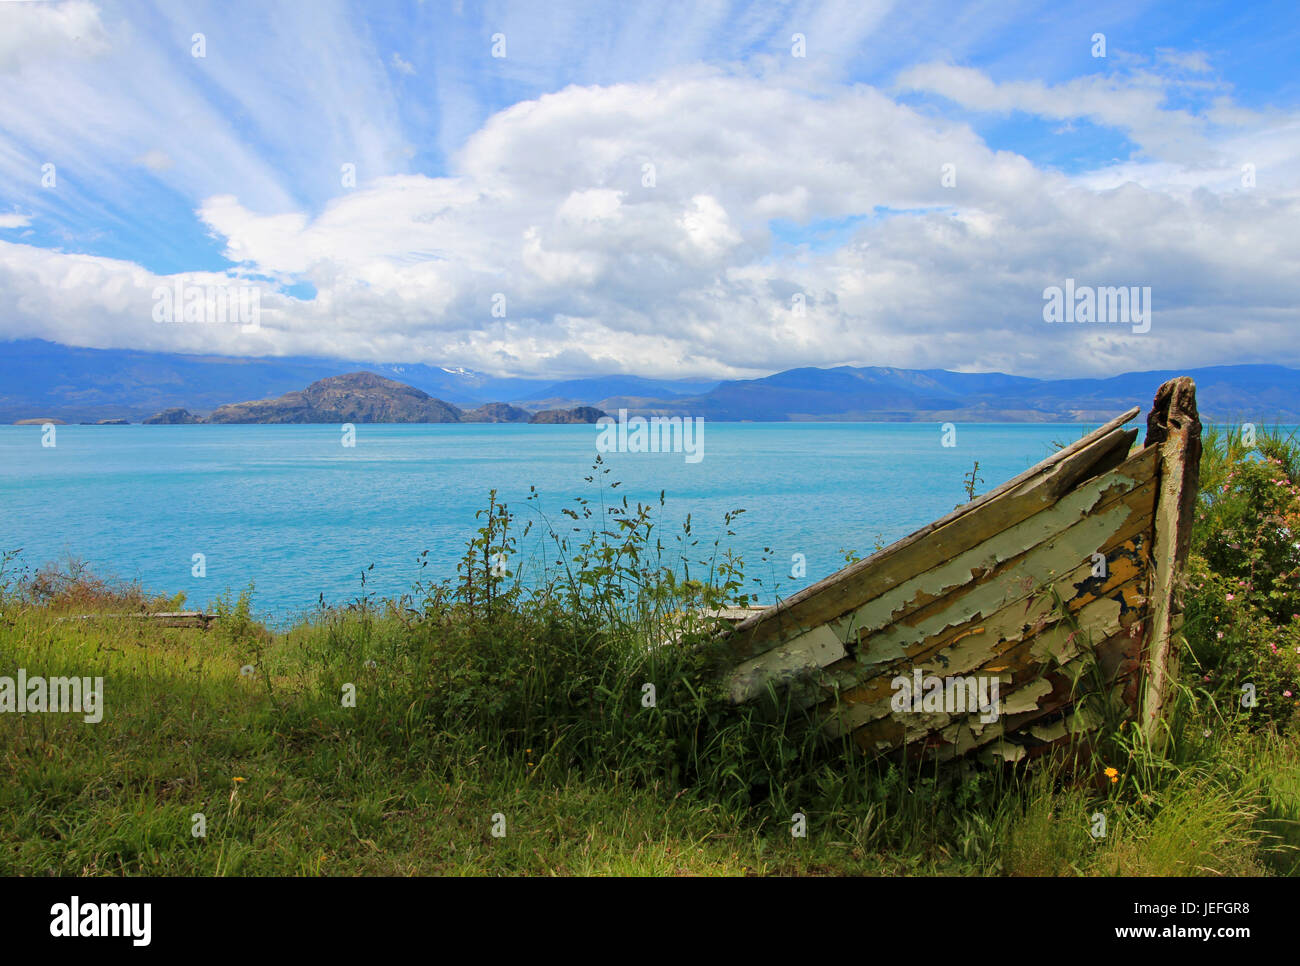 Boat on shore of General Carrera Lake with islands, Patagonia, Chile Stock Photo